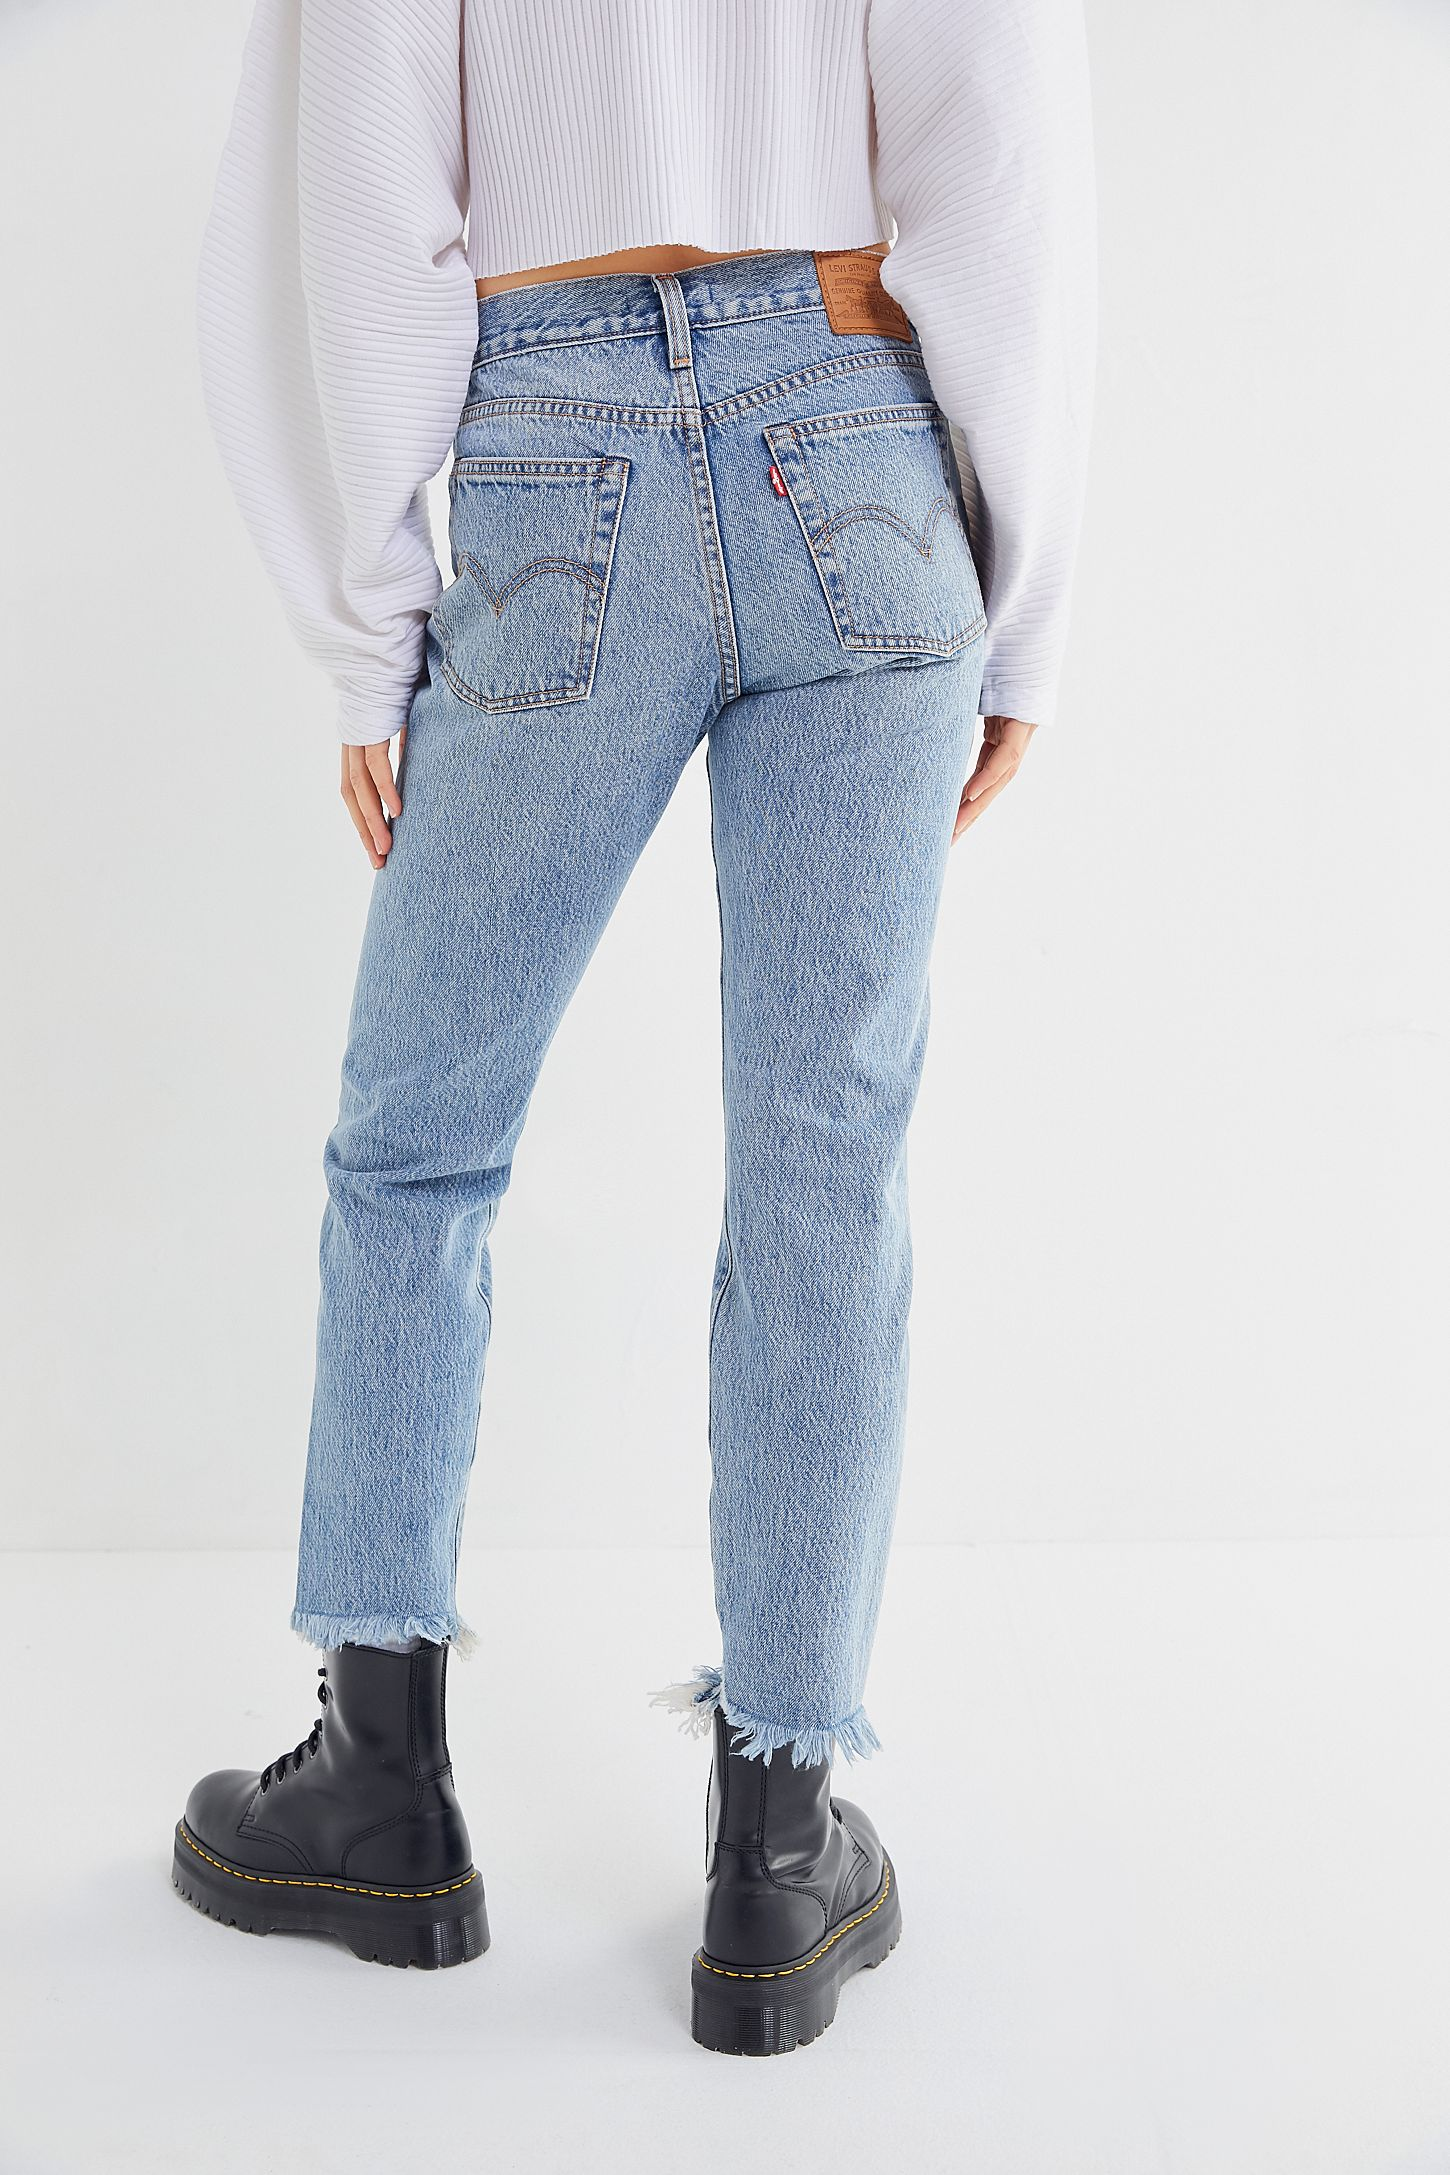 4c3ffd11 Levi's Wedgie High-Rise Jean – Shut Up | Urban Outfitters